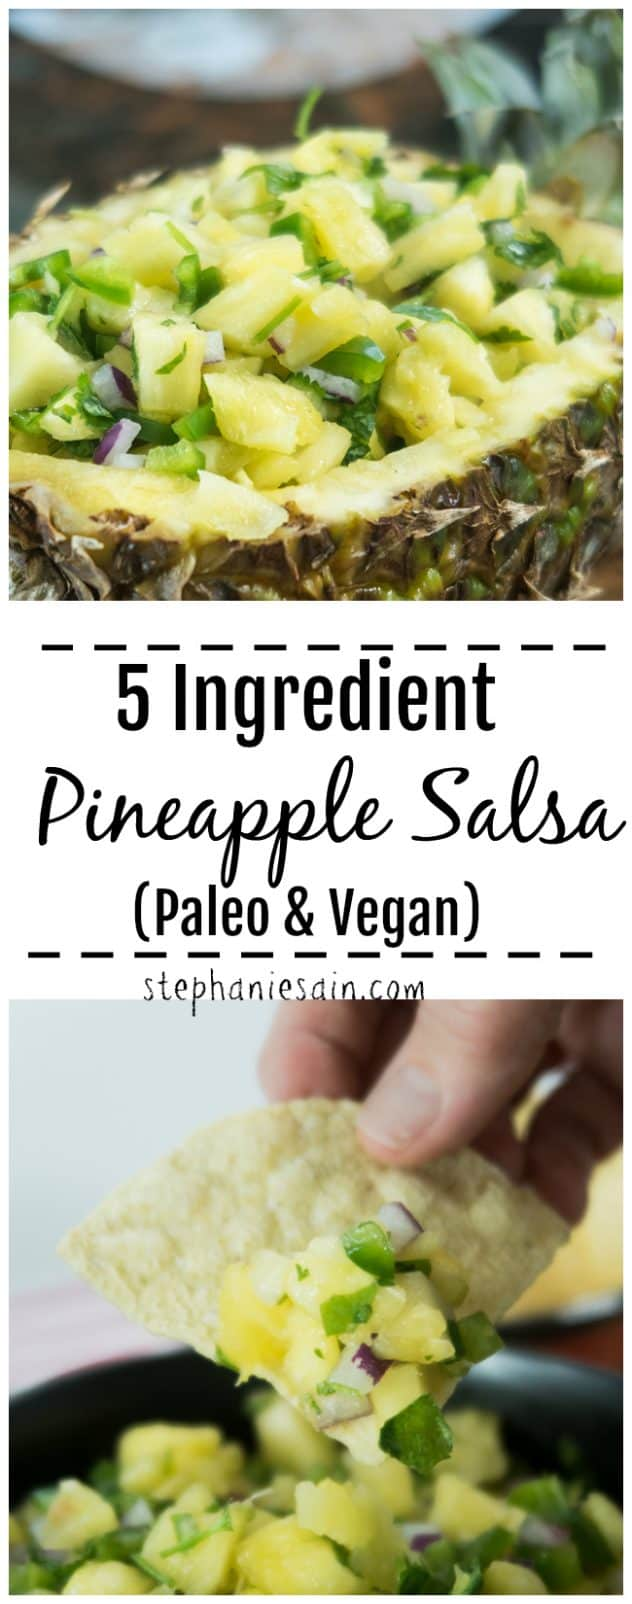 This 5 Ingredient Pineapple Salsa is super Quick to throw together & is the perfect blend of sweet & spicy. Great as a party appetizer with chips or can serve on tacos, burgers & so much more. Vegan, Paleo & Gluten Free.